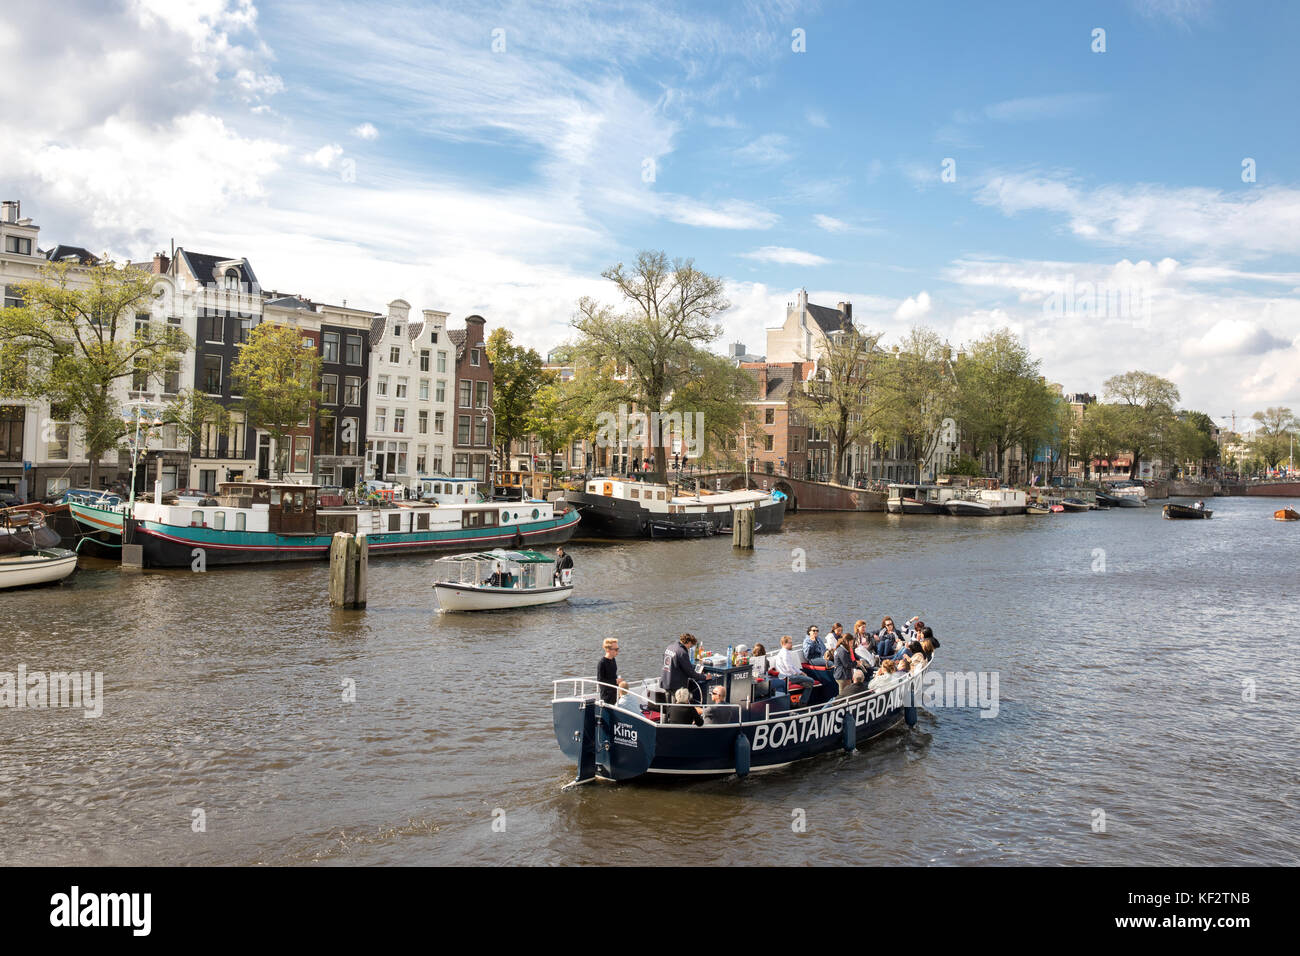 Tourists on a boat trip around Amsterdam's canals, Netherlands - Stock Image